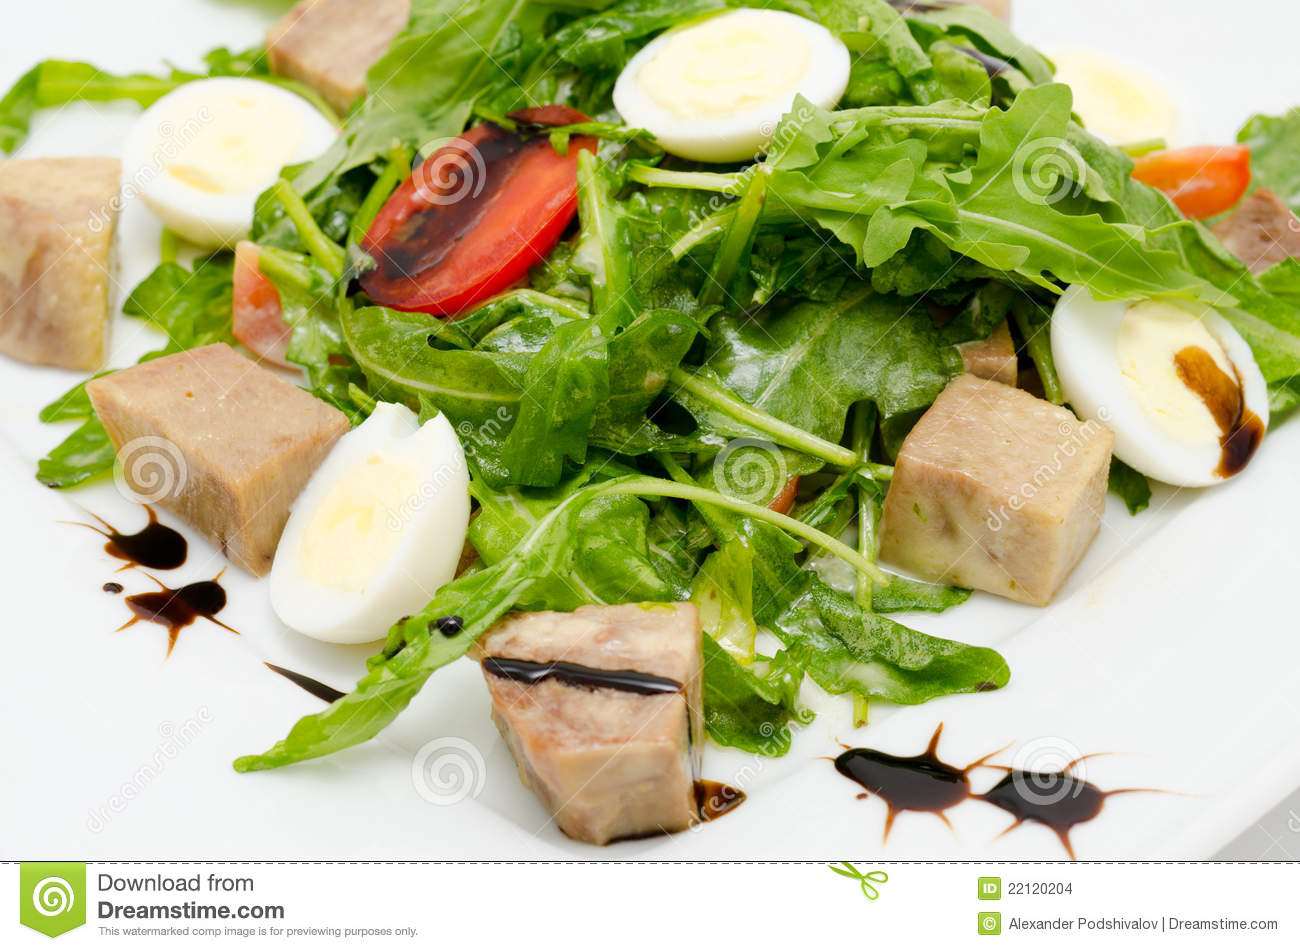 Salad - egg halves, pork cubes, roquette and tomatoes.